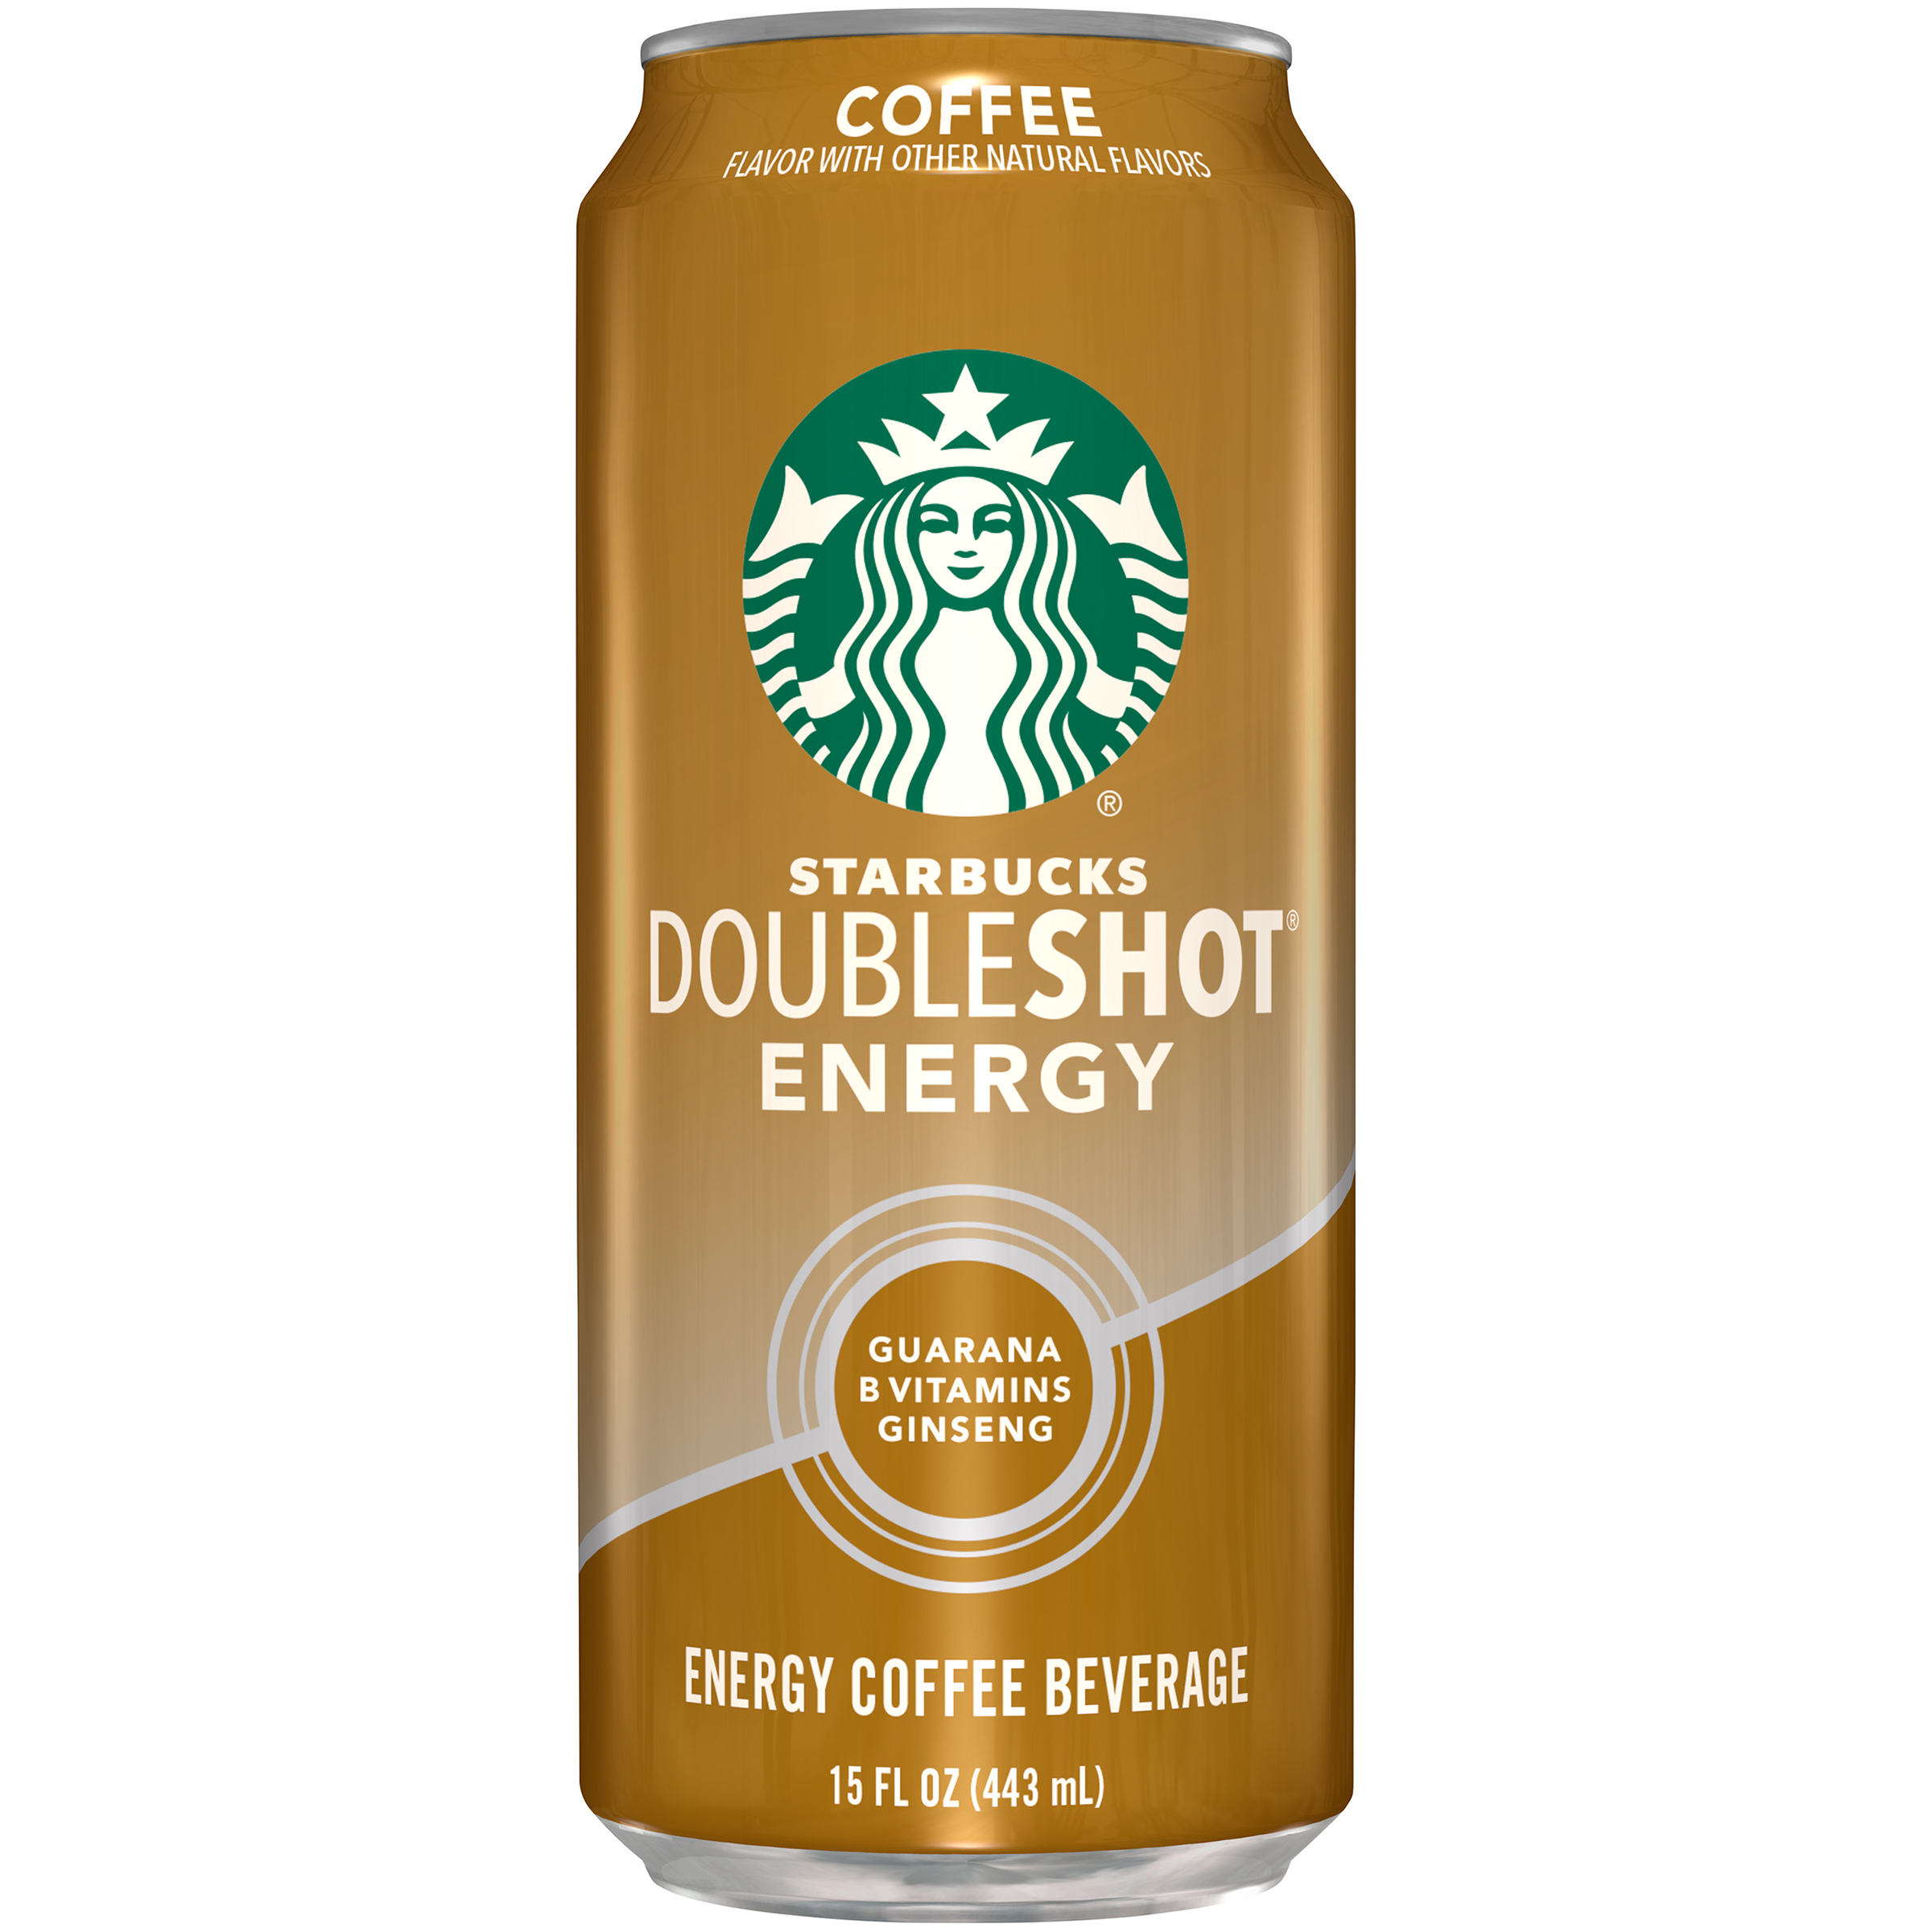 Starbucks Doubleshot® Energy Coffee Energy Coffee Beverage 15 fl. oz. Can